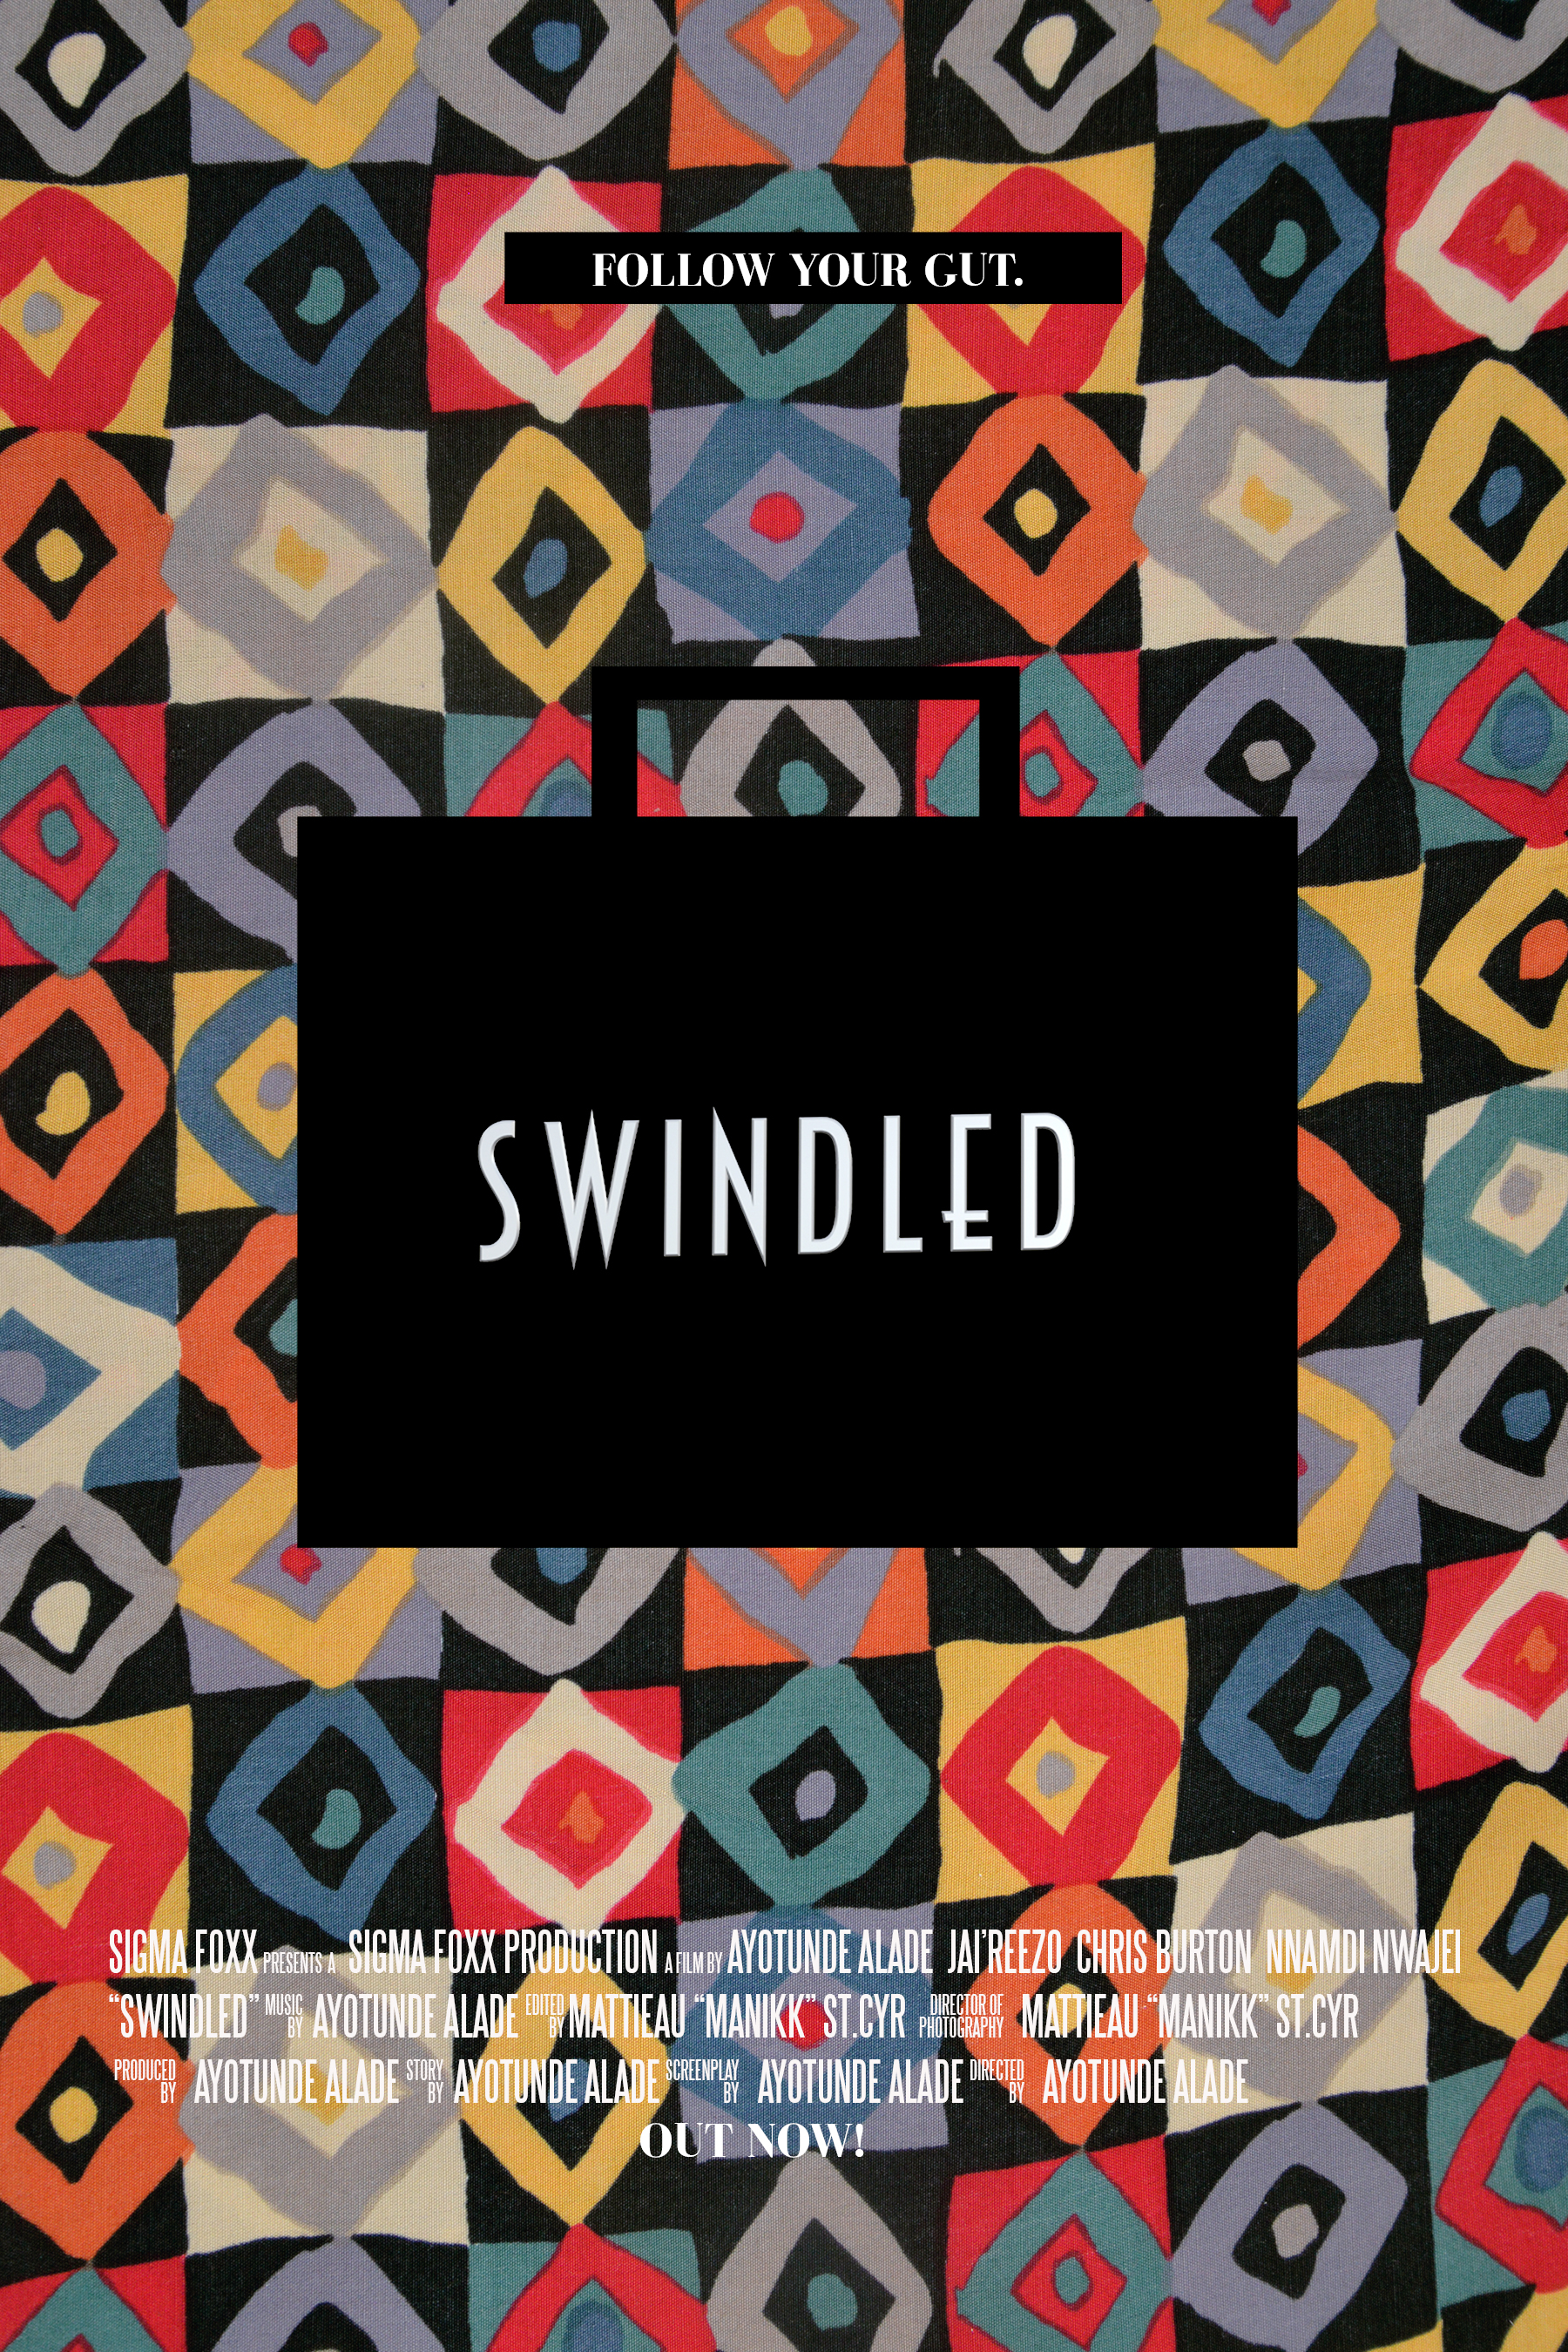 Swindled poster out now.jpg